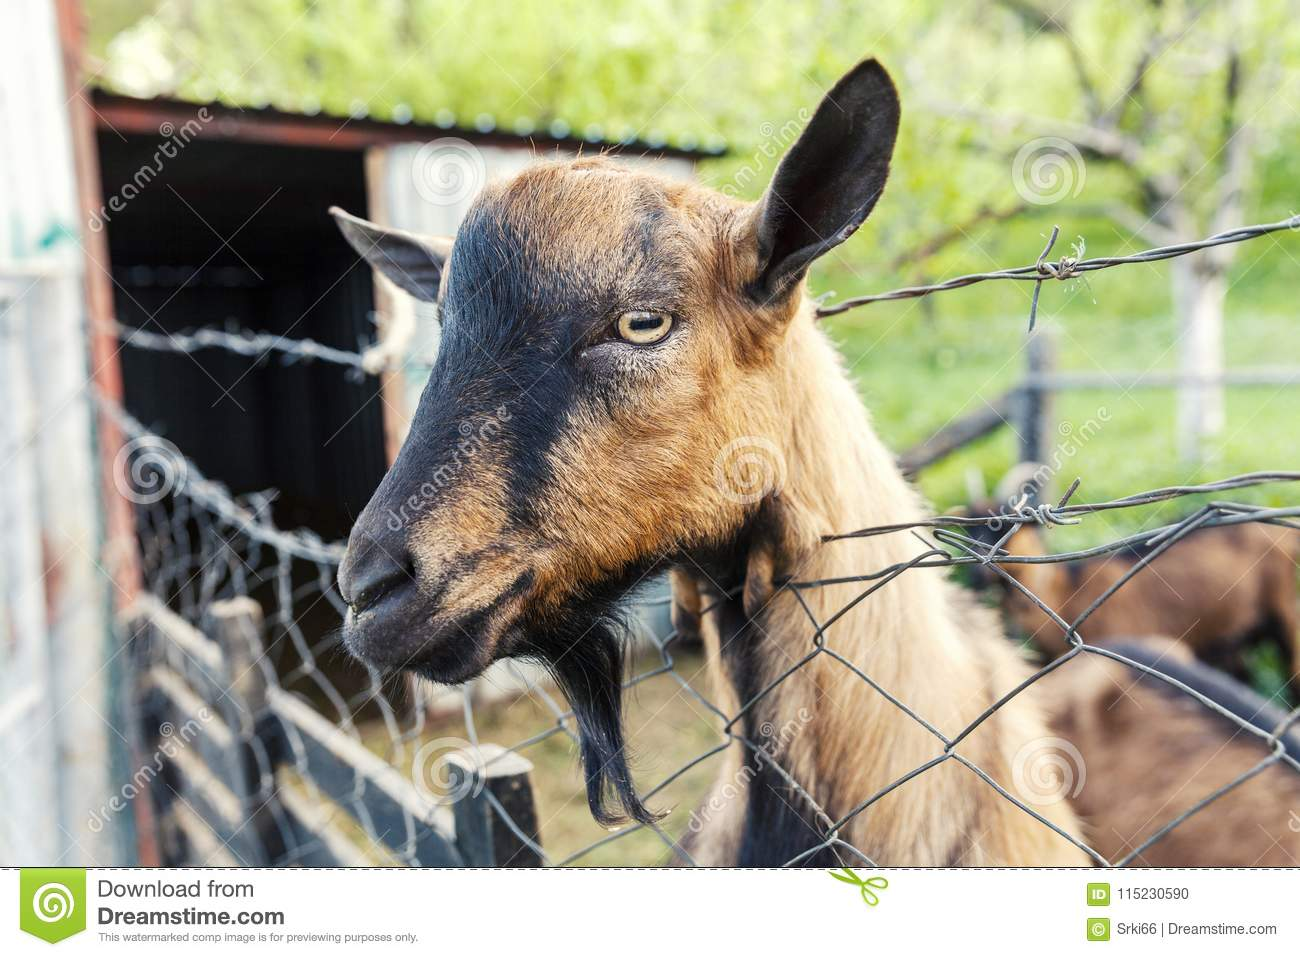 Brown goat on fence stock photo  Image of funny, rural - 115230590